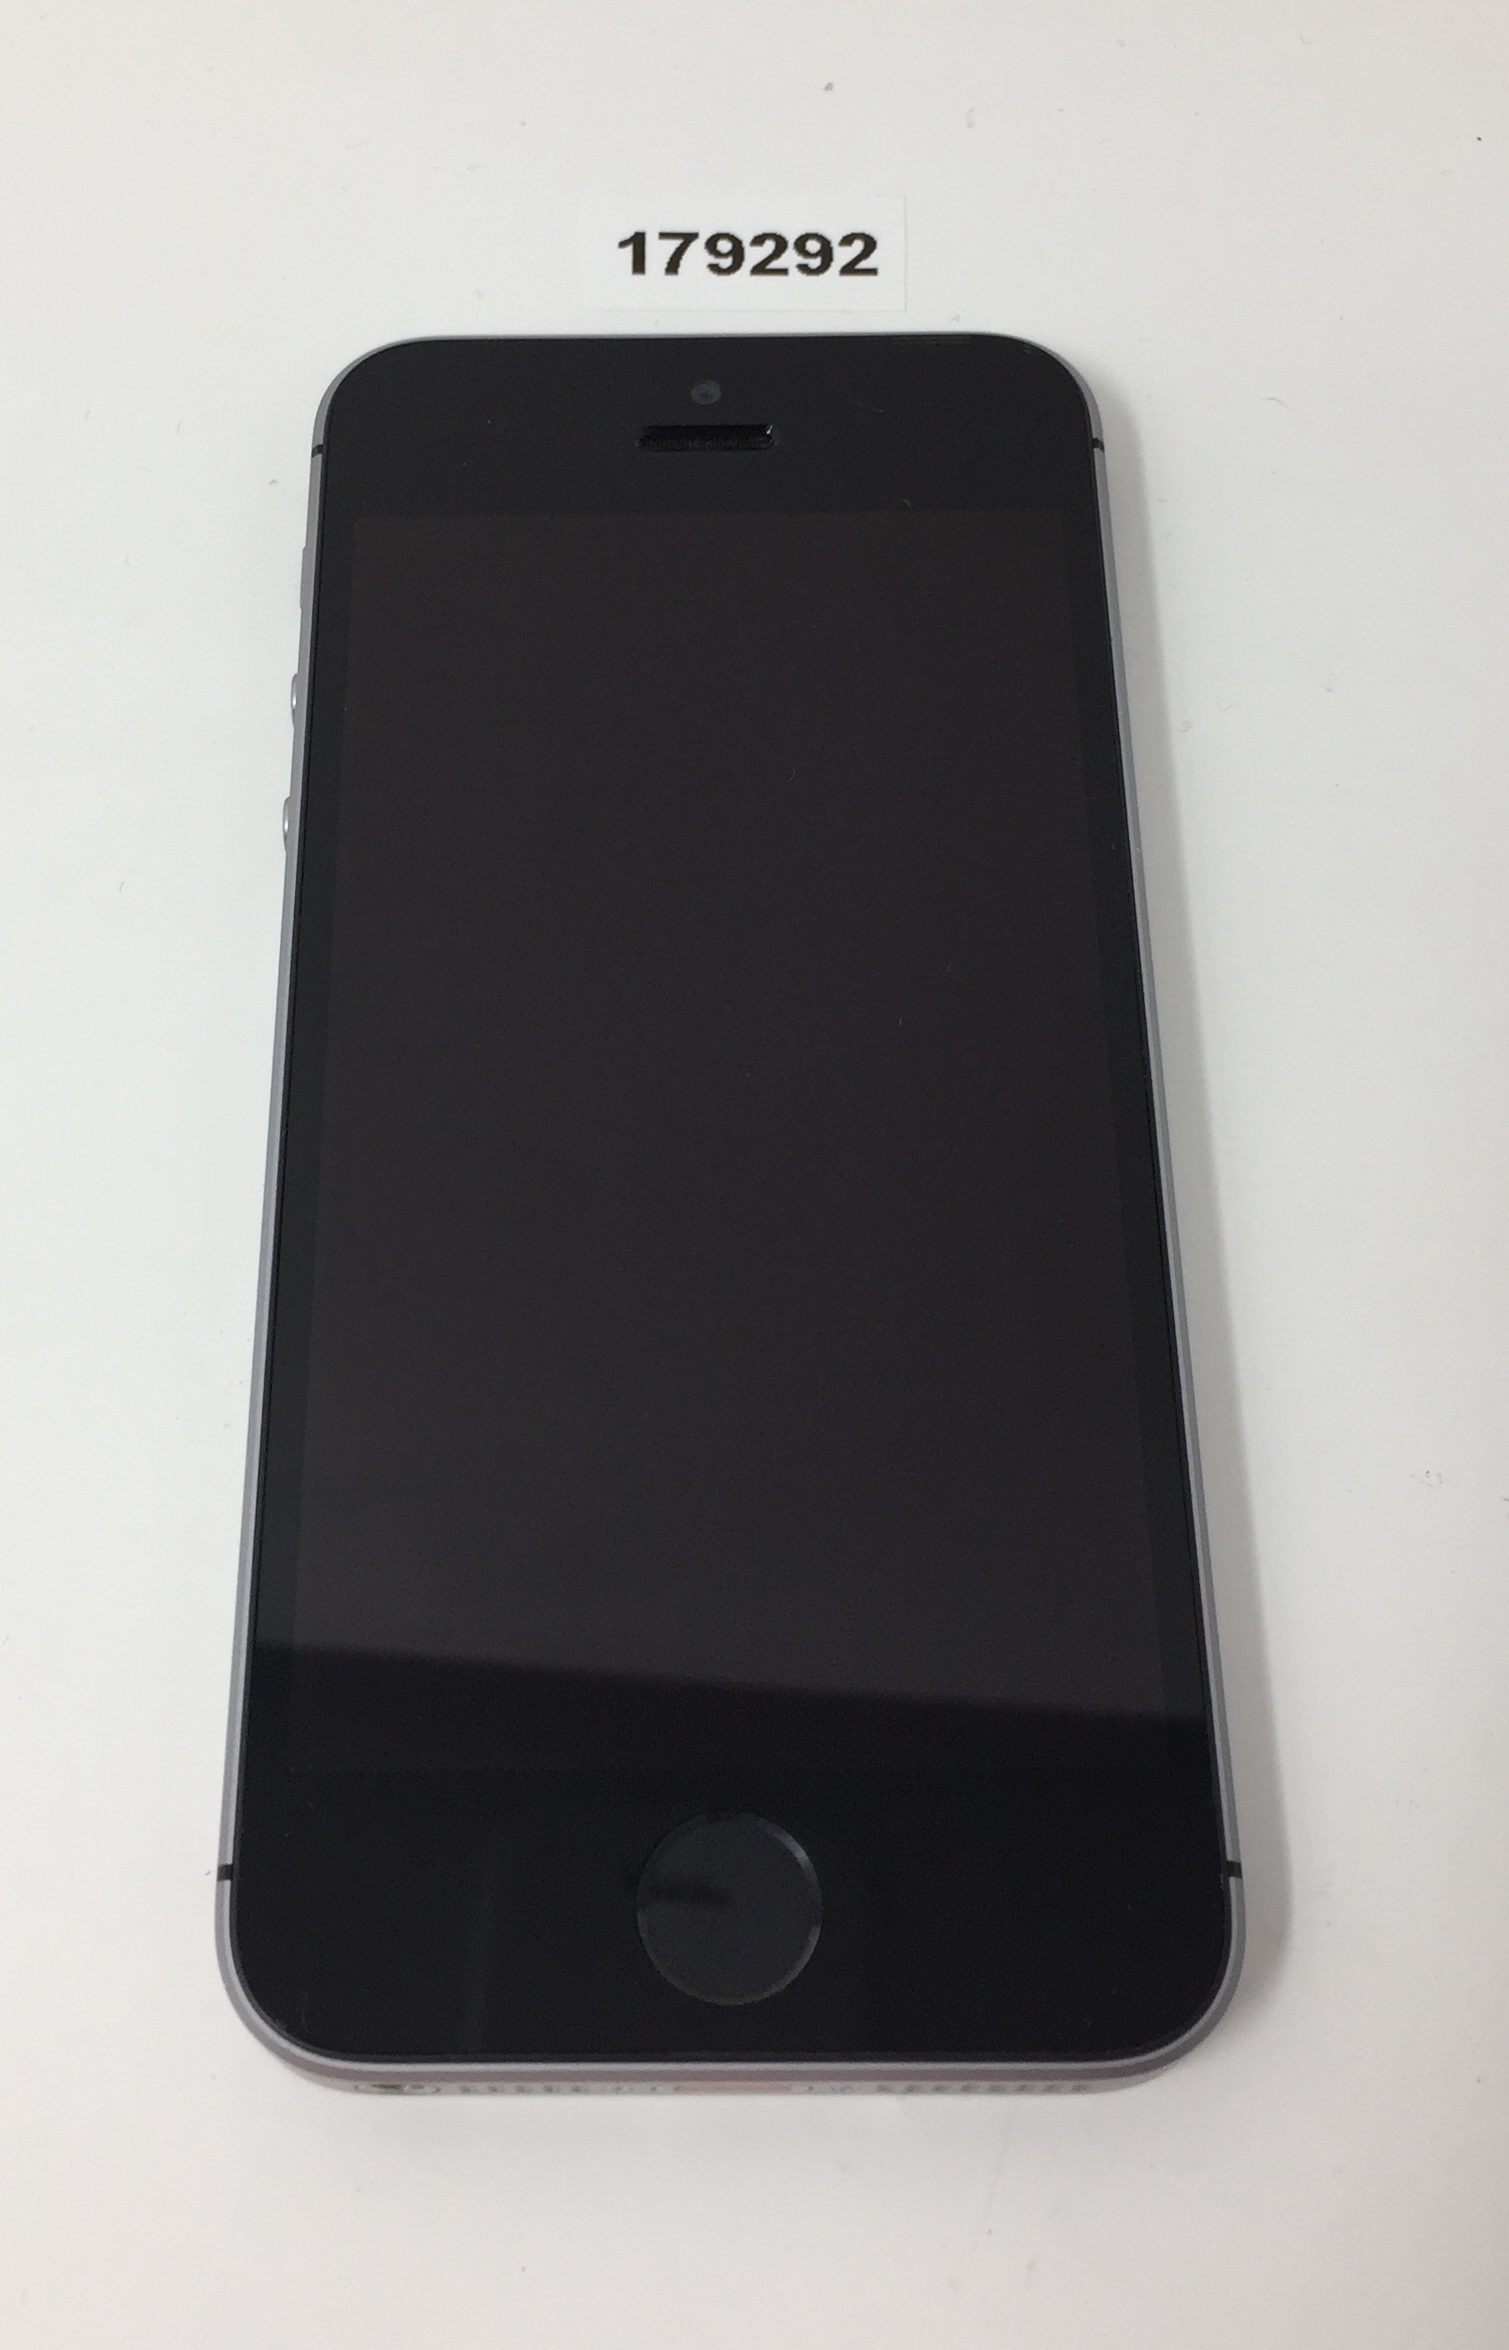 iPhone SE 16GB, 16 GB, Space Gray, Kuva 1